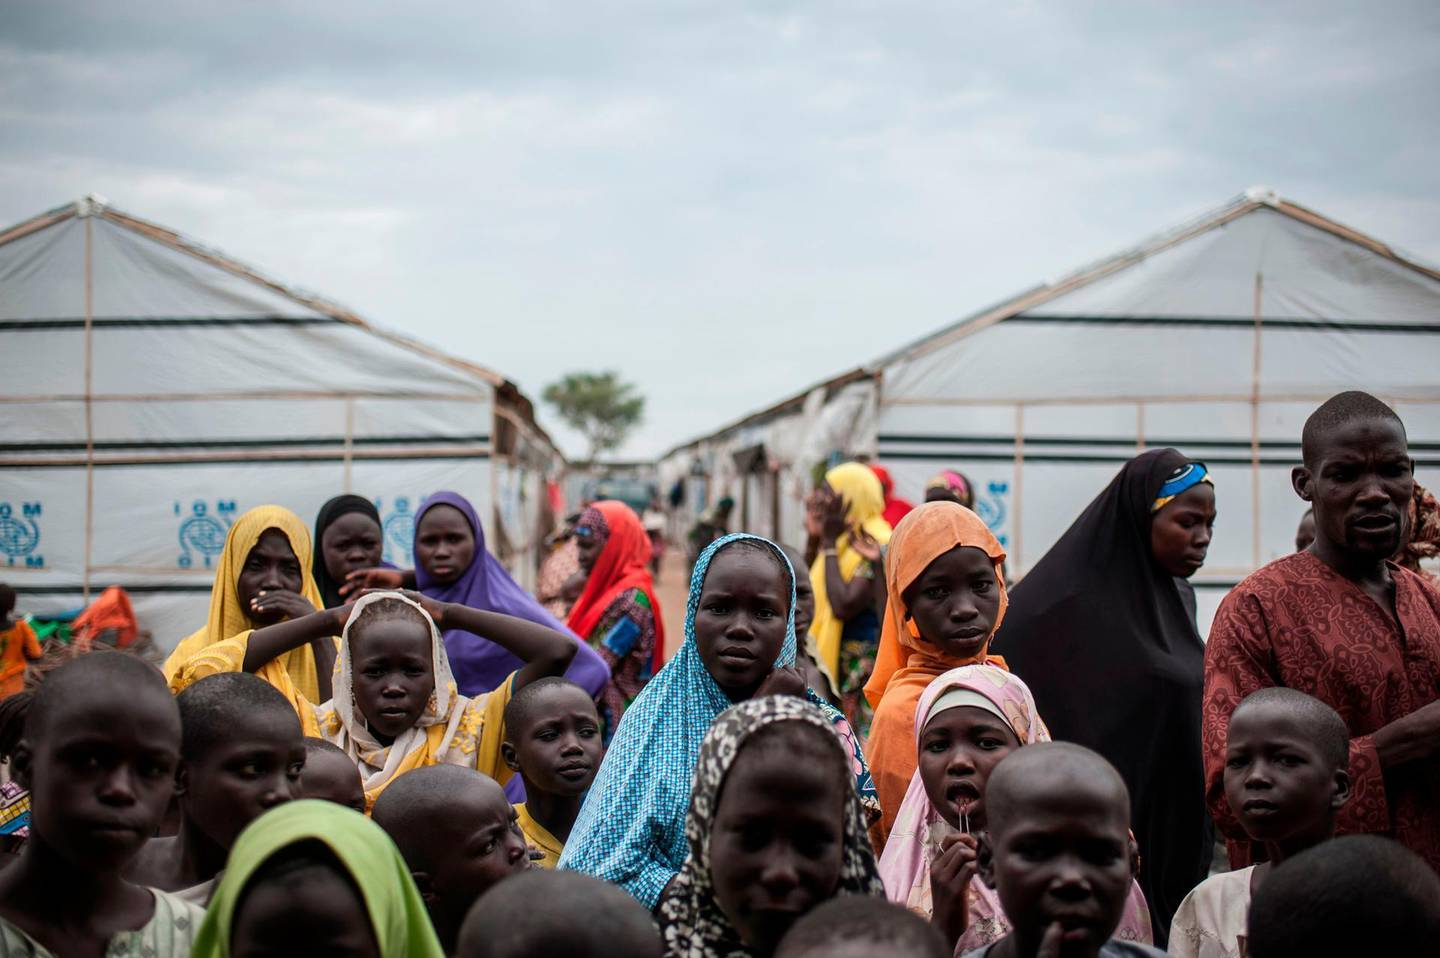 """TOPSHOT - People gather outside a tent in one of the IDP (Internally Displaced People) camps in Pulka on August 1, 2018. - As the presidential race heats up ahead of February polls, the Nigerian government and officials of Borno state, the epicentre of the Boko Haram Islamist insurgency, are encouraging and facilitating the """"return"""" of tens of thousands of people. As he campaigns for a second term in office, the incumbent president is working to show that he has delivered on his pledge to defeat the Islamists. But the reality is that people are being sent back to camps across Borno state while Boko Haram is still launching devastating attacks against military and civilian targets. Pulka is a garrison town built on a model becoming increasingly common across Nigeria's remote northeast region: a devastated town turned into a military base so soldiers can protect satellite camps and humanitarian agencies can distribute aid. (Photo by Stefan HEUNIS / AFP)"""